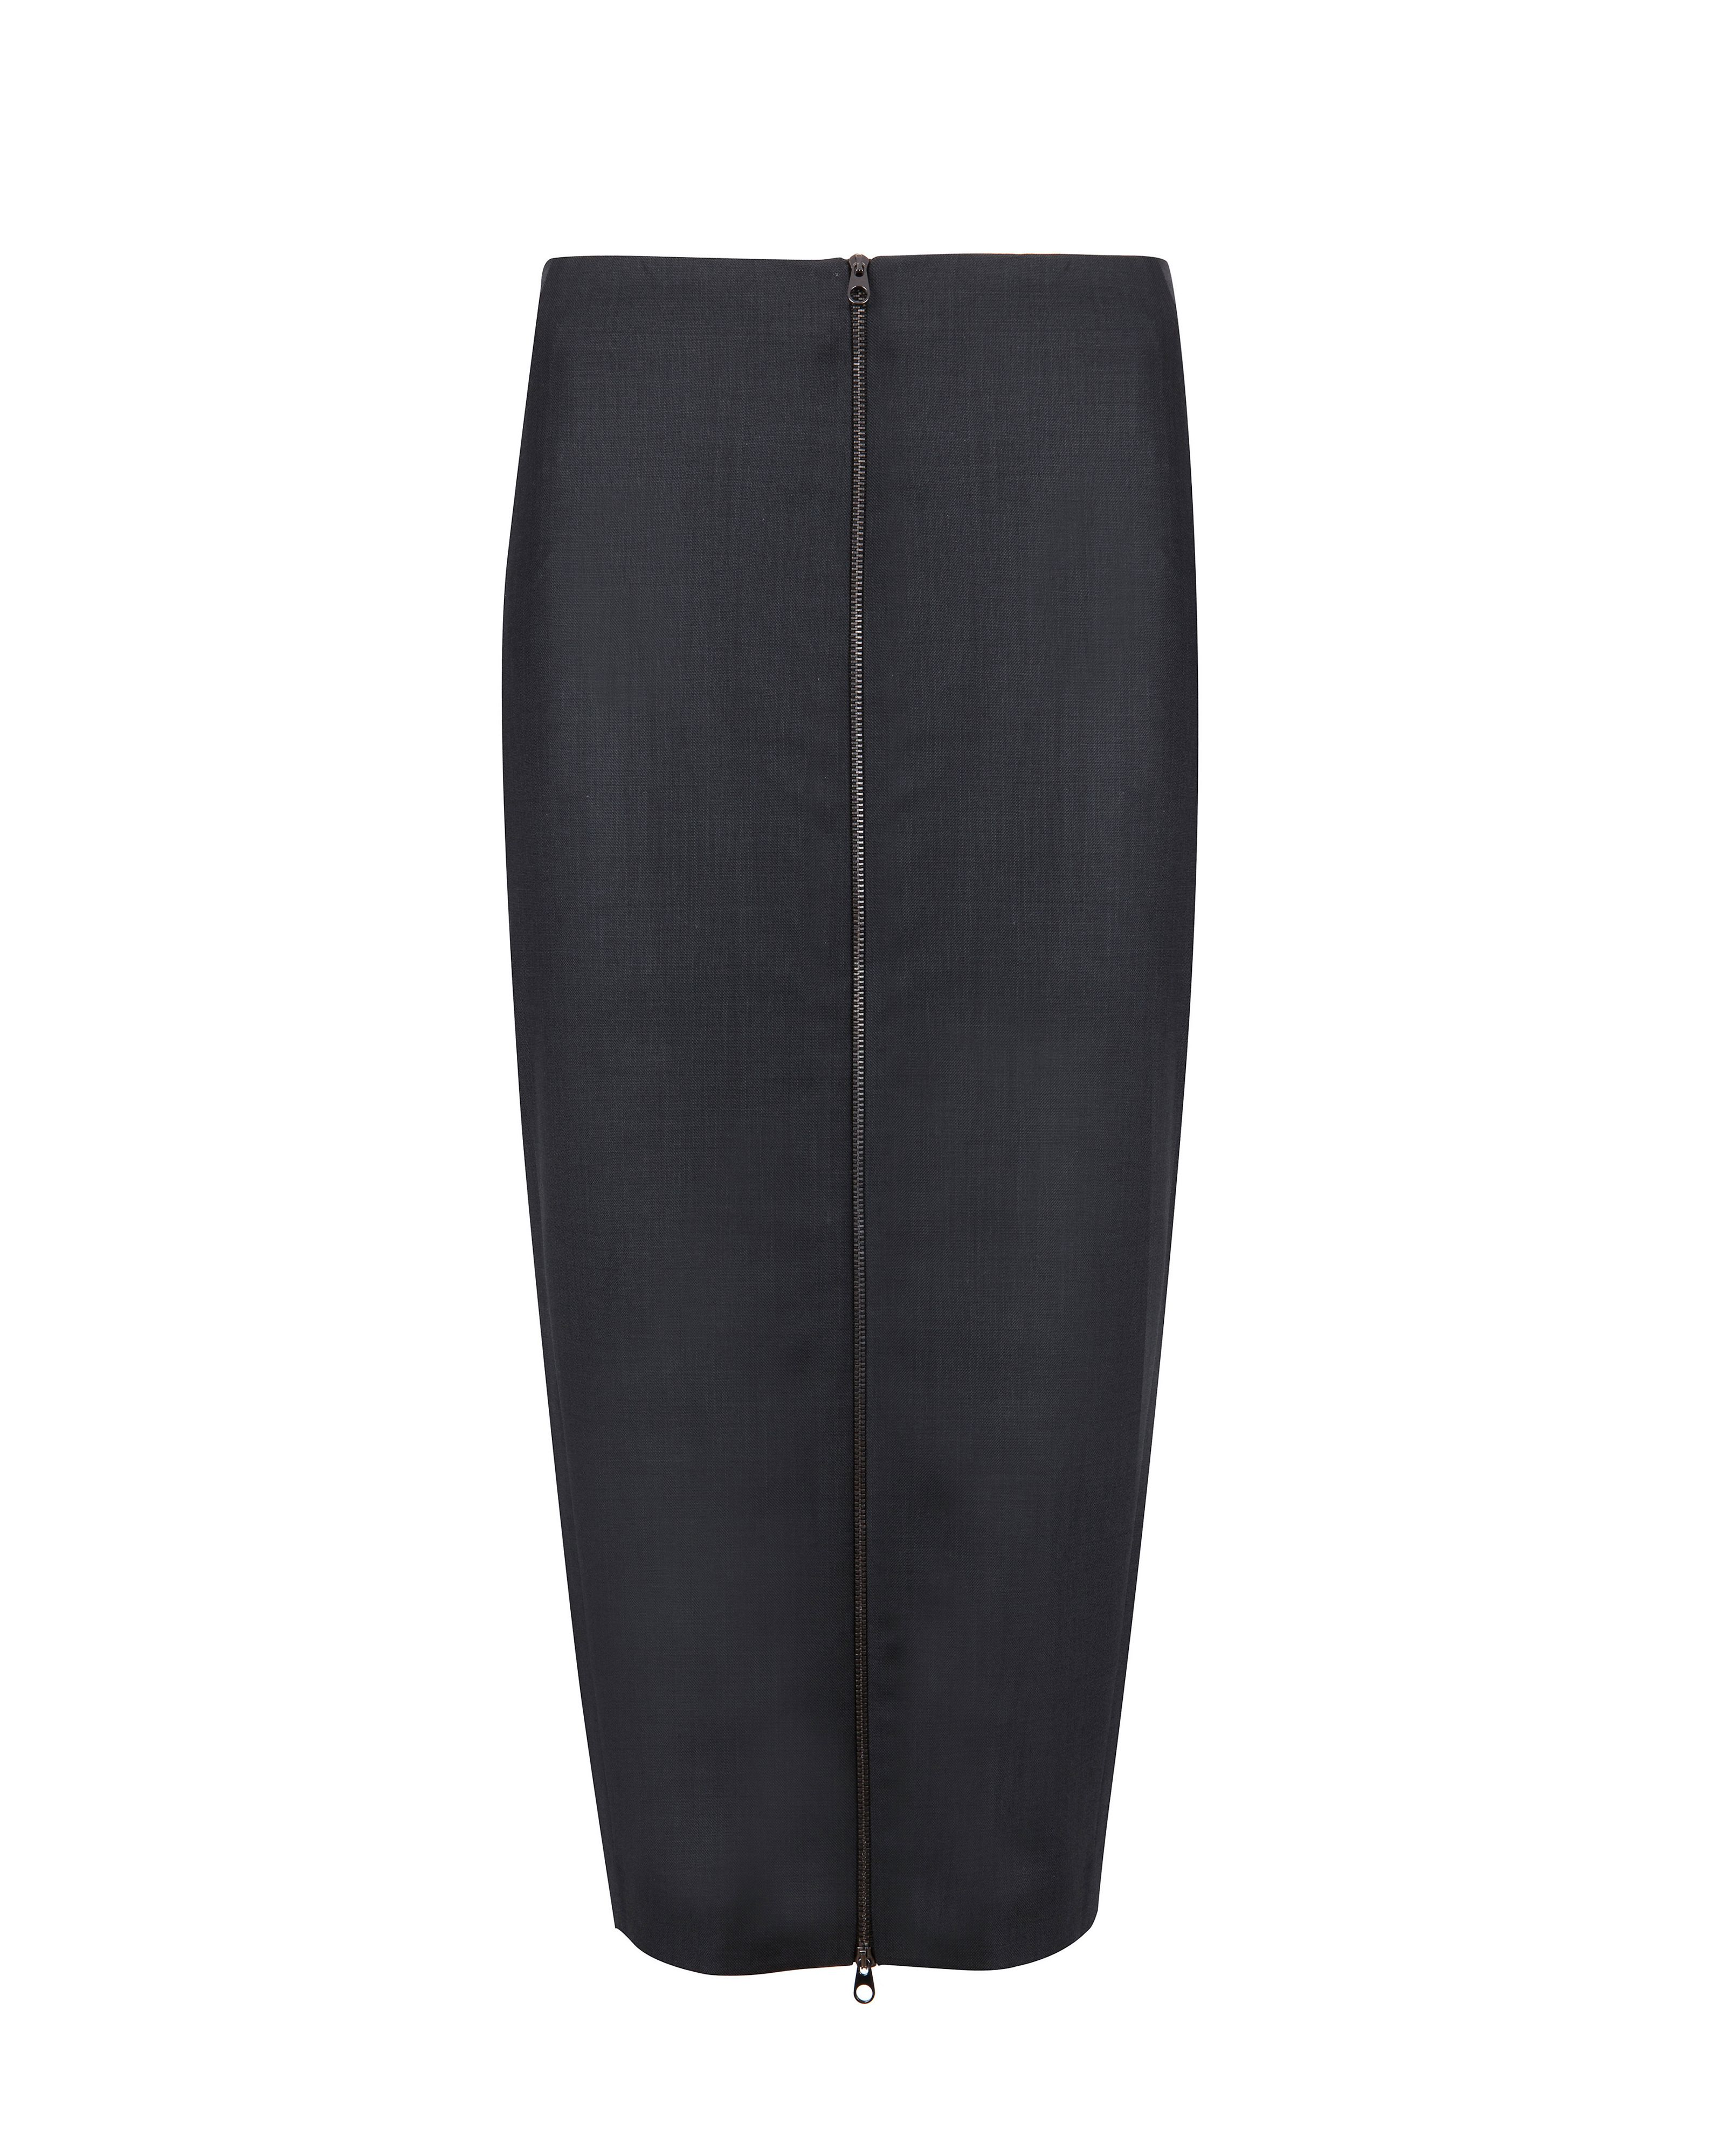 Edis pencil skirt